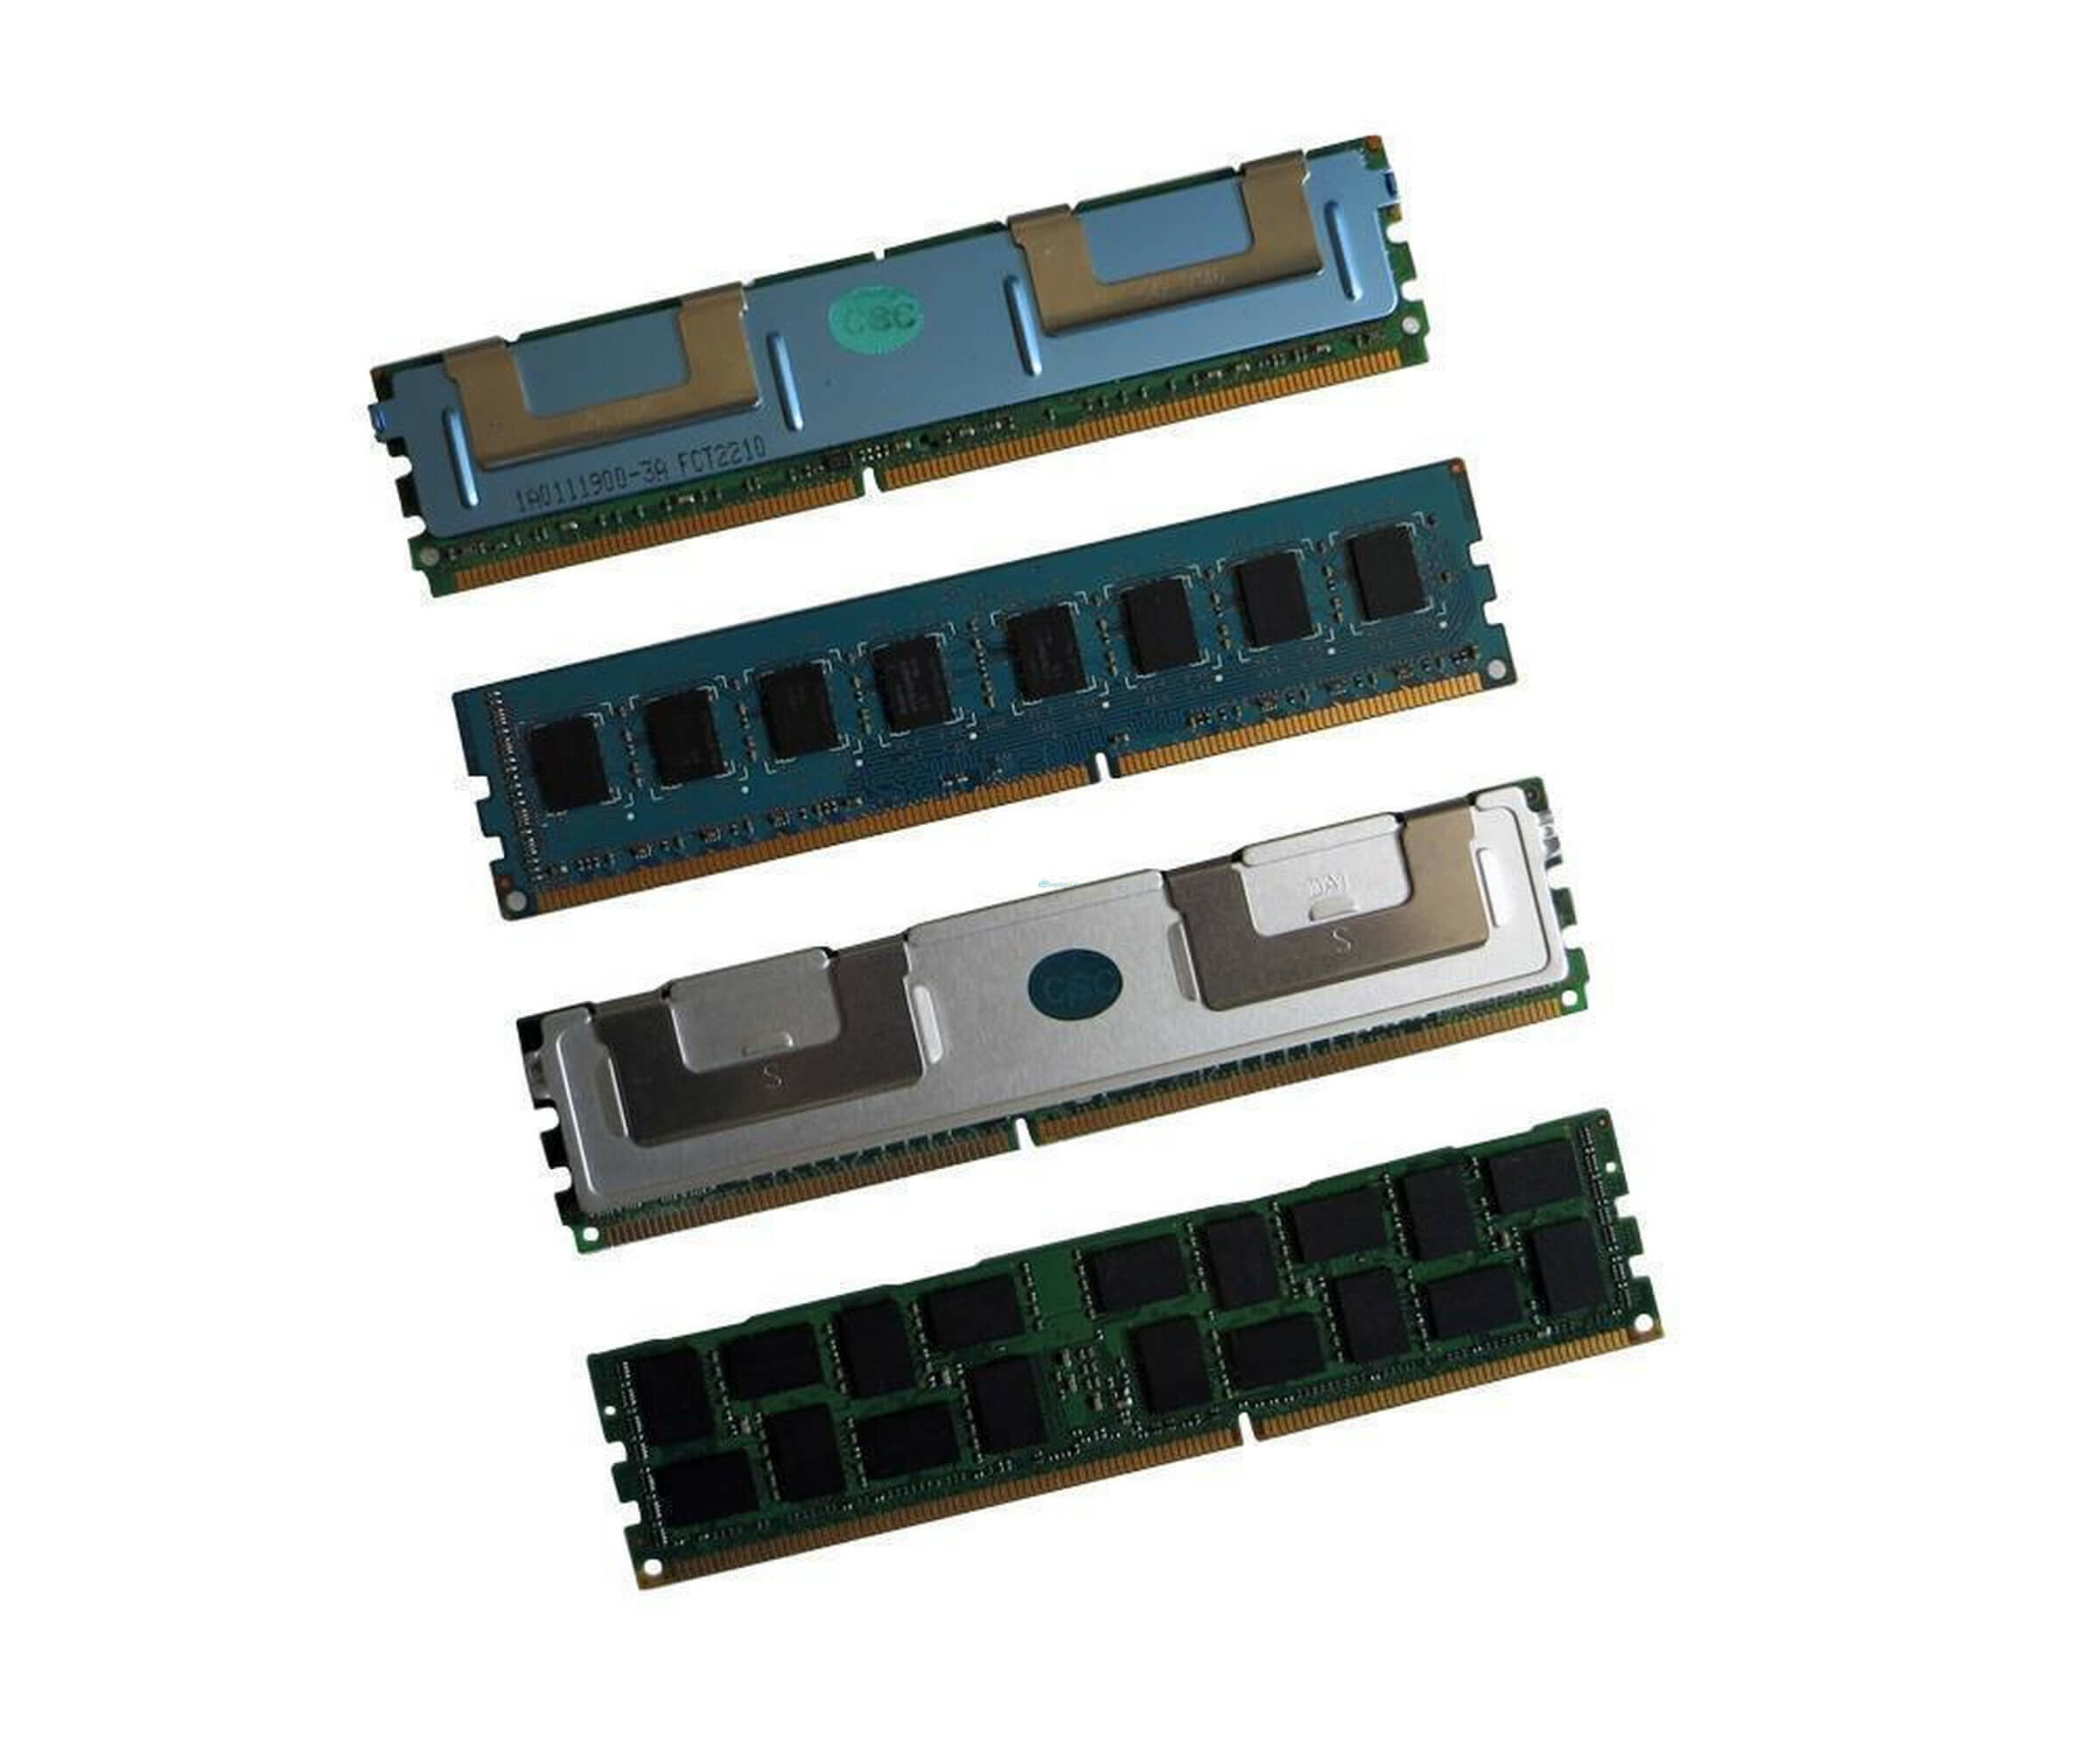 Infineon Qimonda - HYS72T128000HR-5-A - 1 GB - 240-PIN - PC-3200 - DDR2 SDRAM